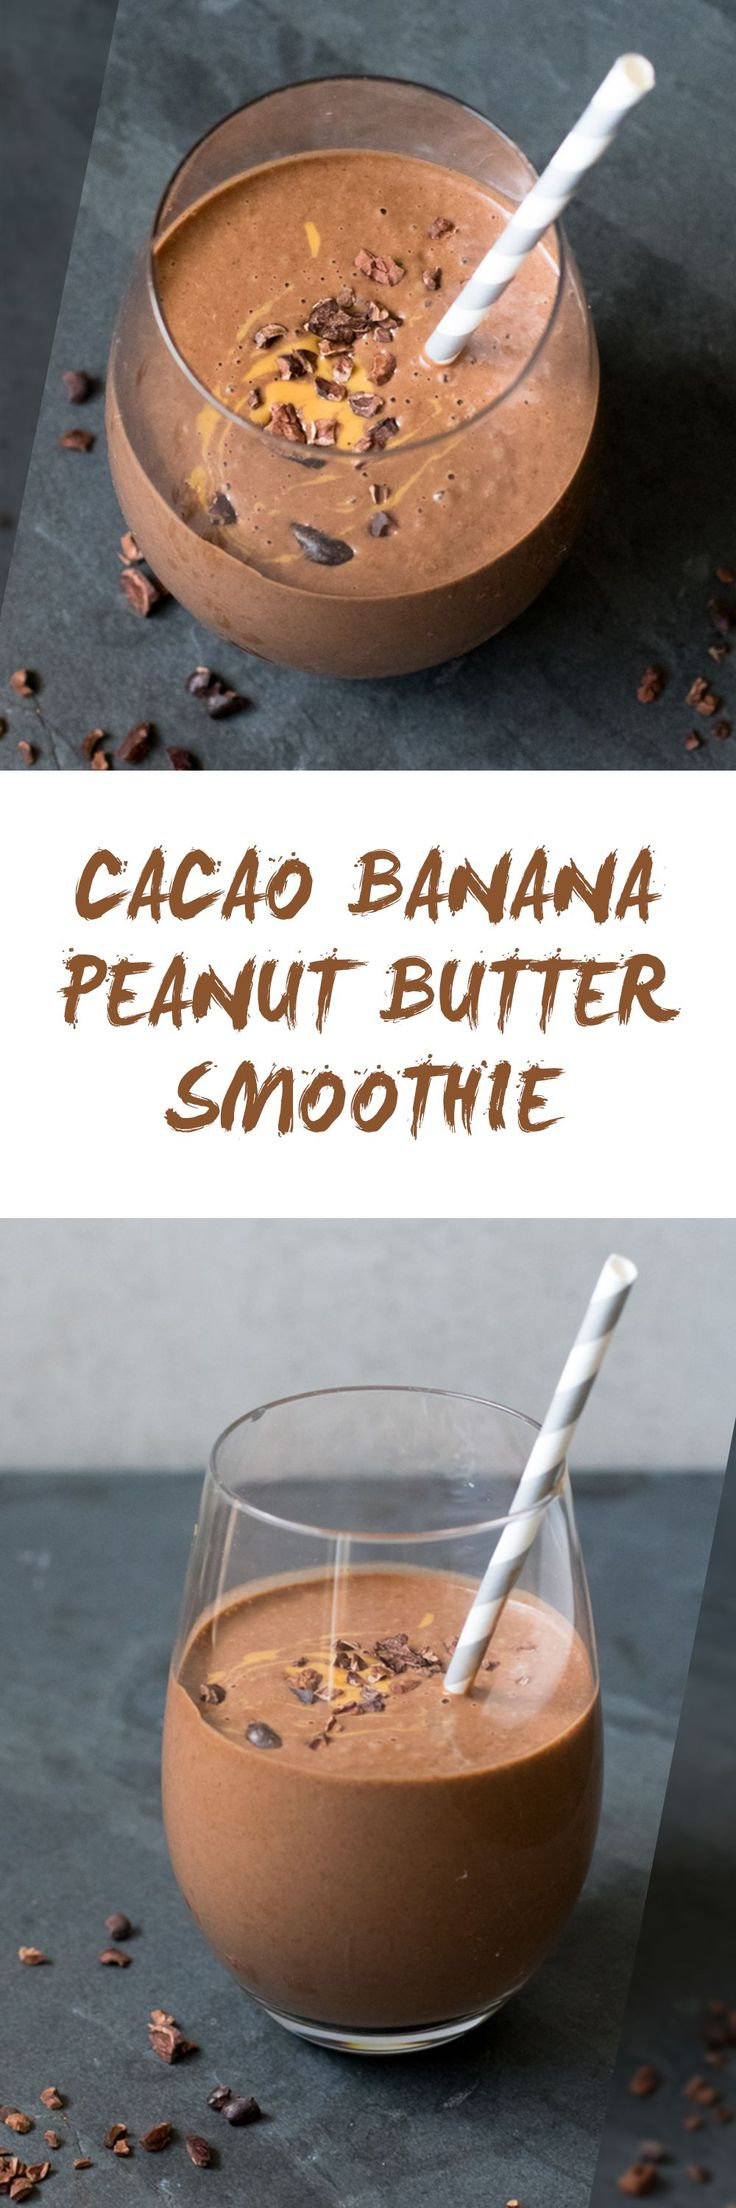 This thick and creamy Cacao Banana Peanut Butter Smoothie is made with nutrient dense cacao nibs and cacao powder. Perfect for breakfast or anytime of day!